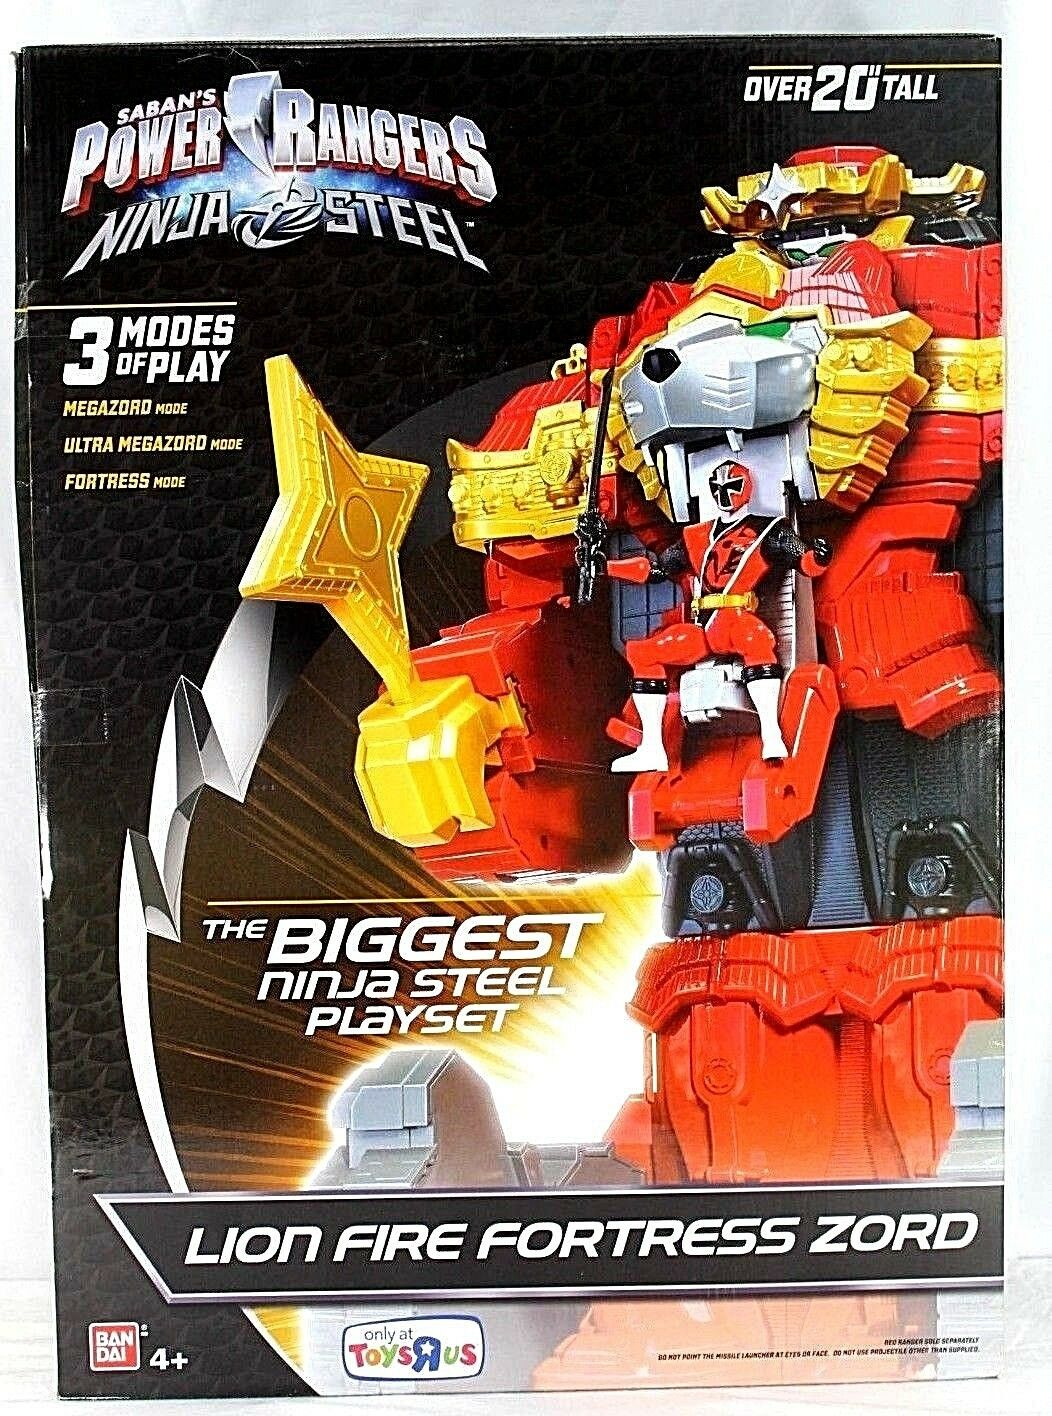 Saban's Power Rangers Ninja Steel Lion Fire Fortress Zord 20+  Toys R Us